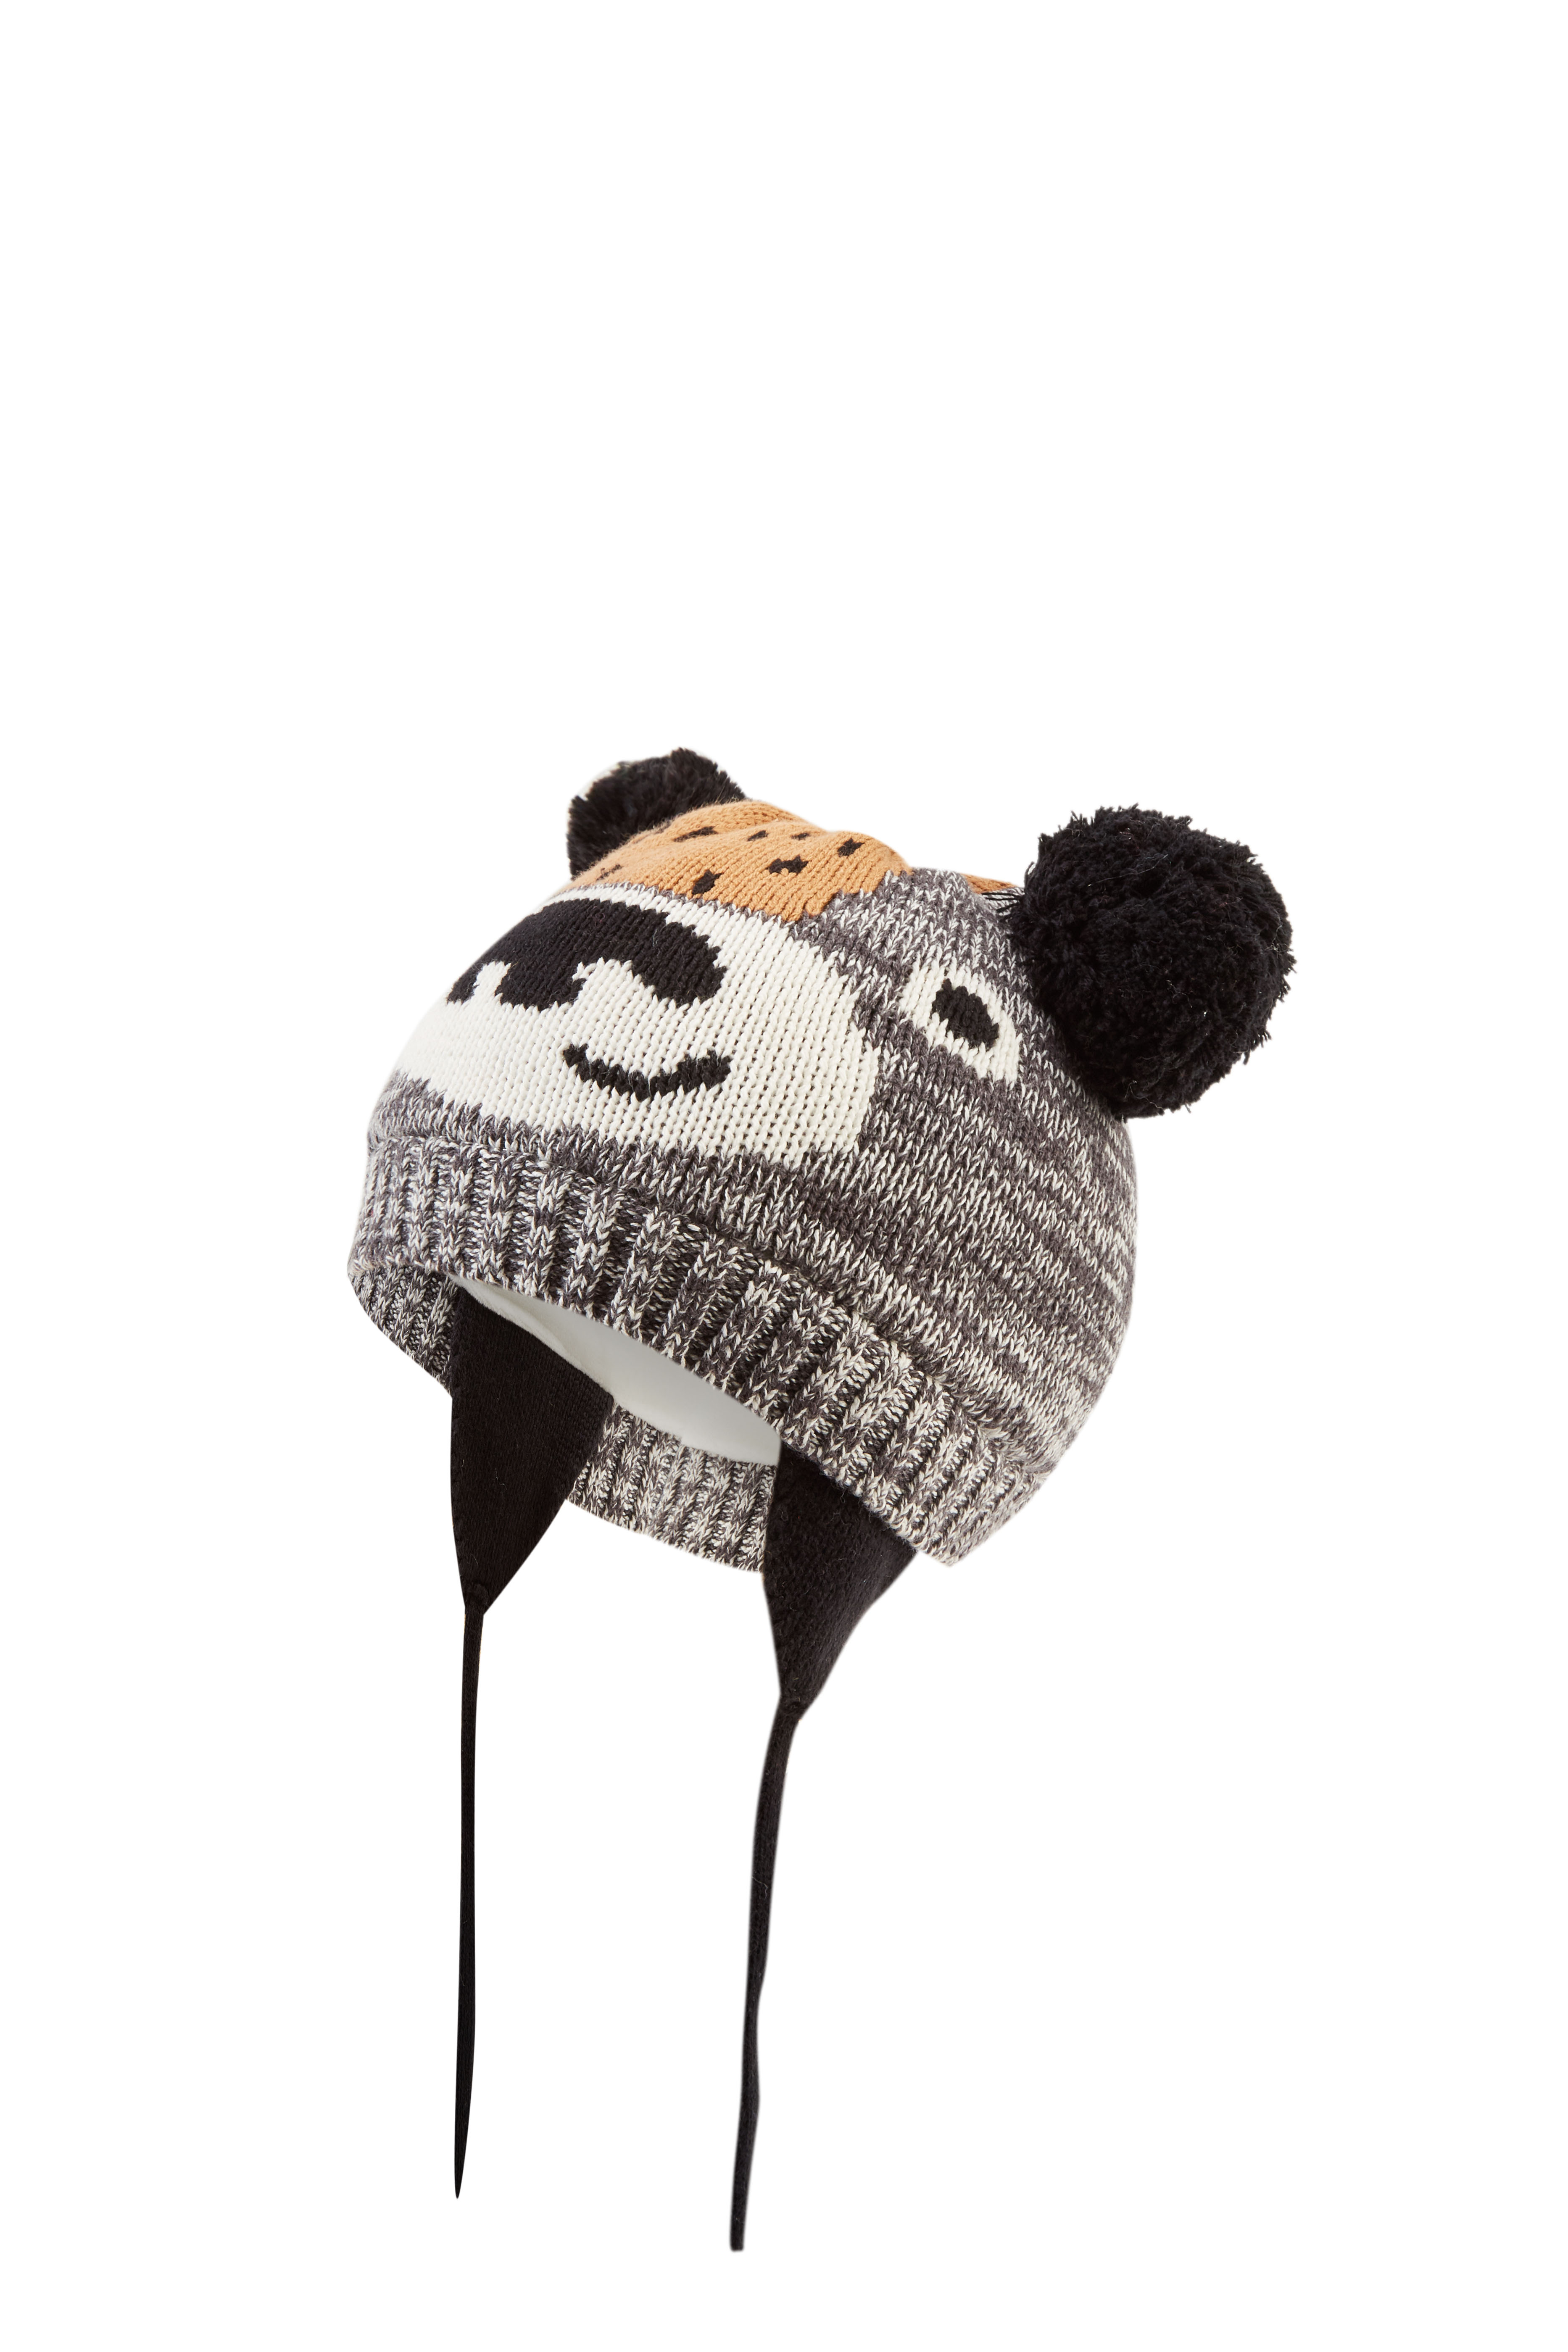 Boy's Winter Tiger Knitted Beanie Cap with Warm Ear Flap